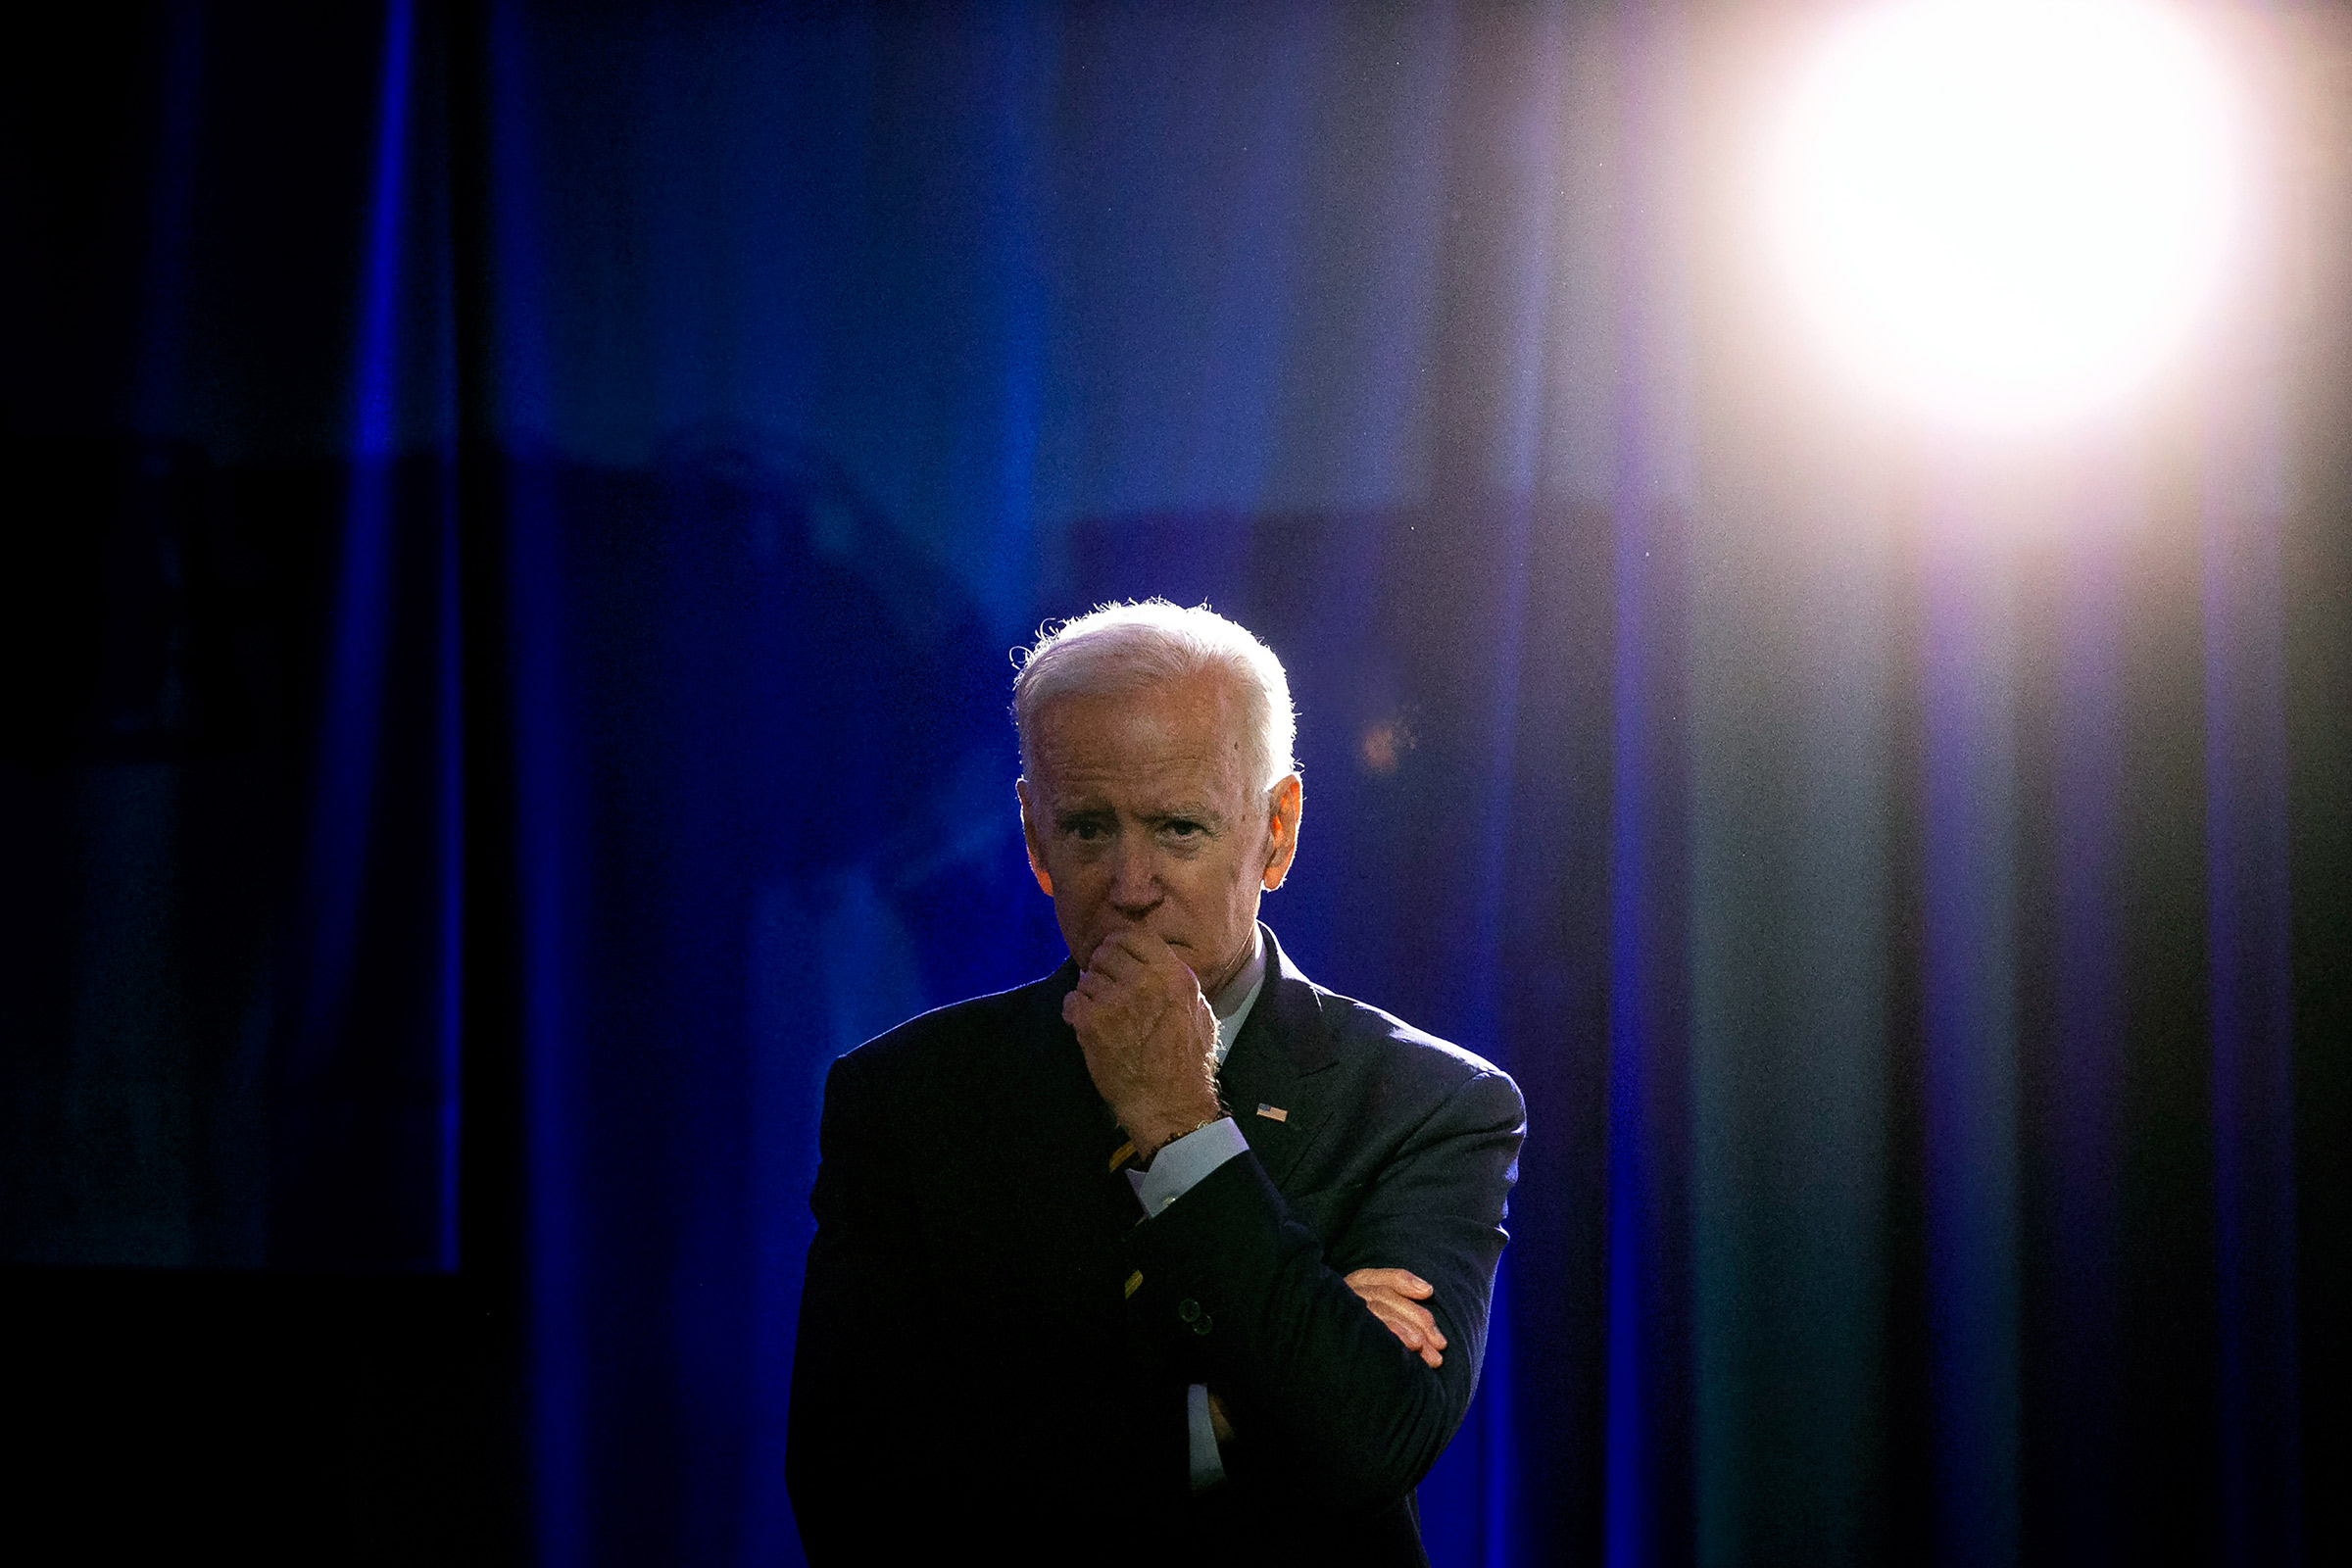 Why Joe Biden's Campaign is Struggling | Time